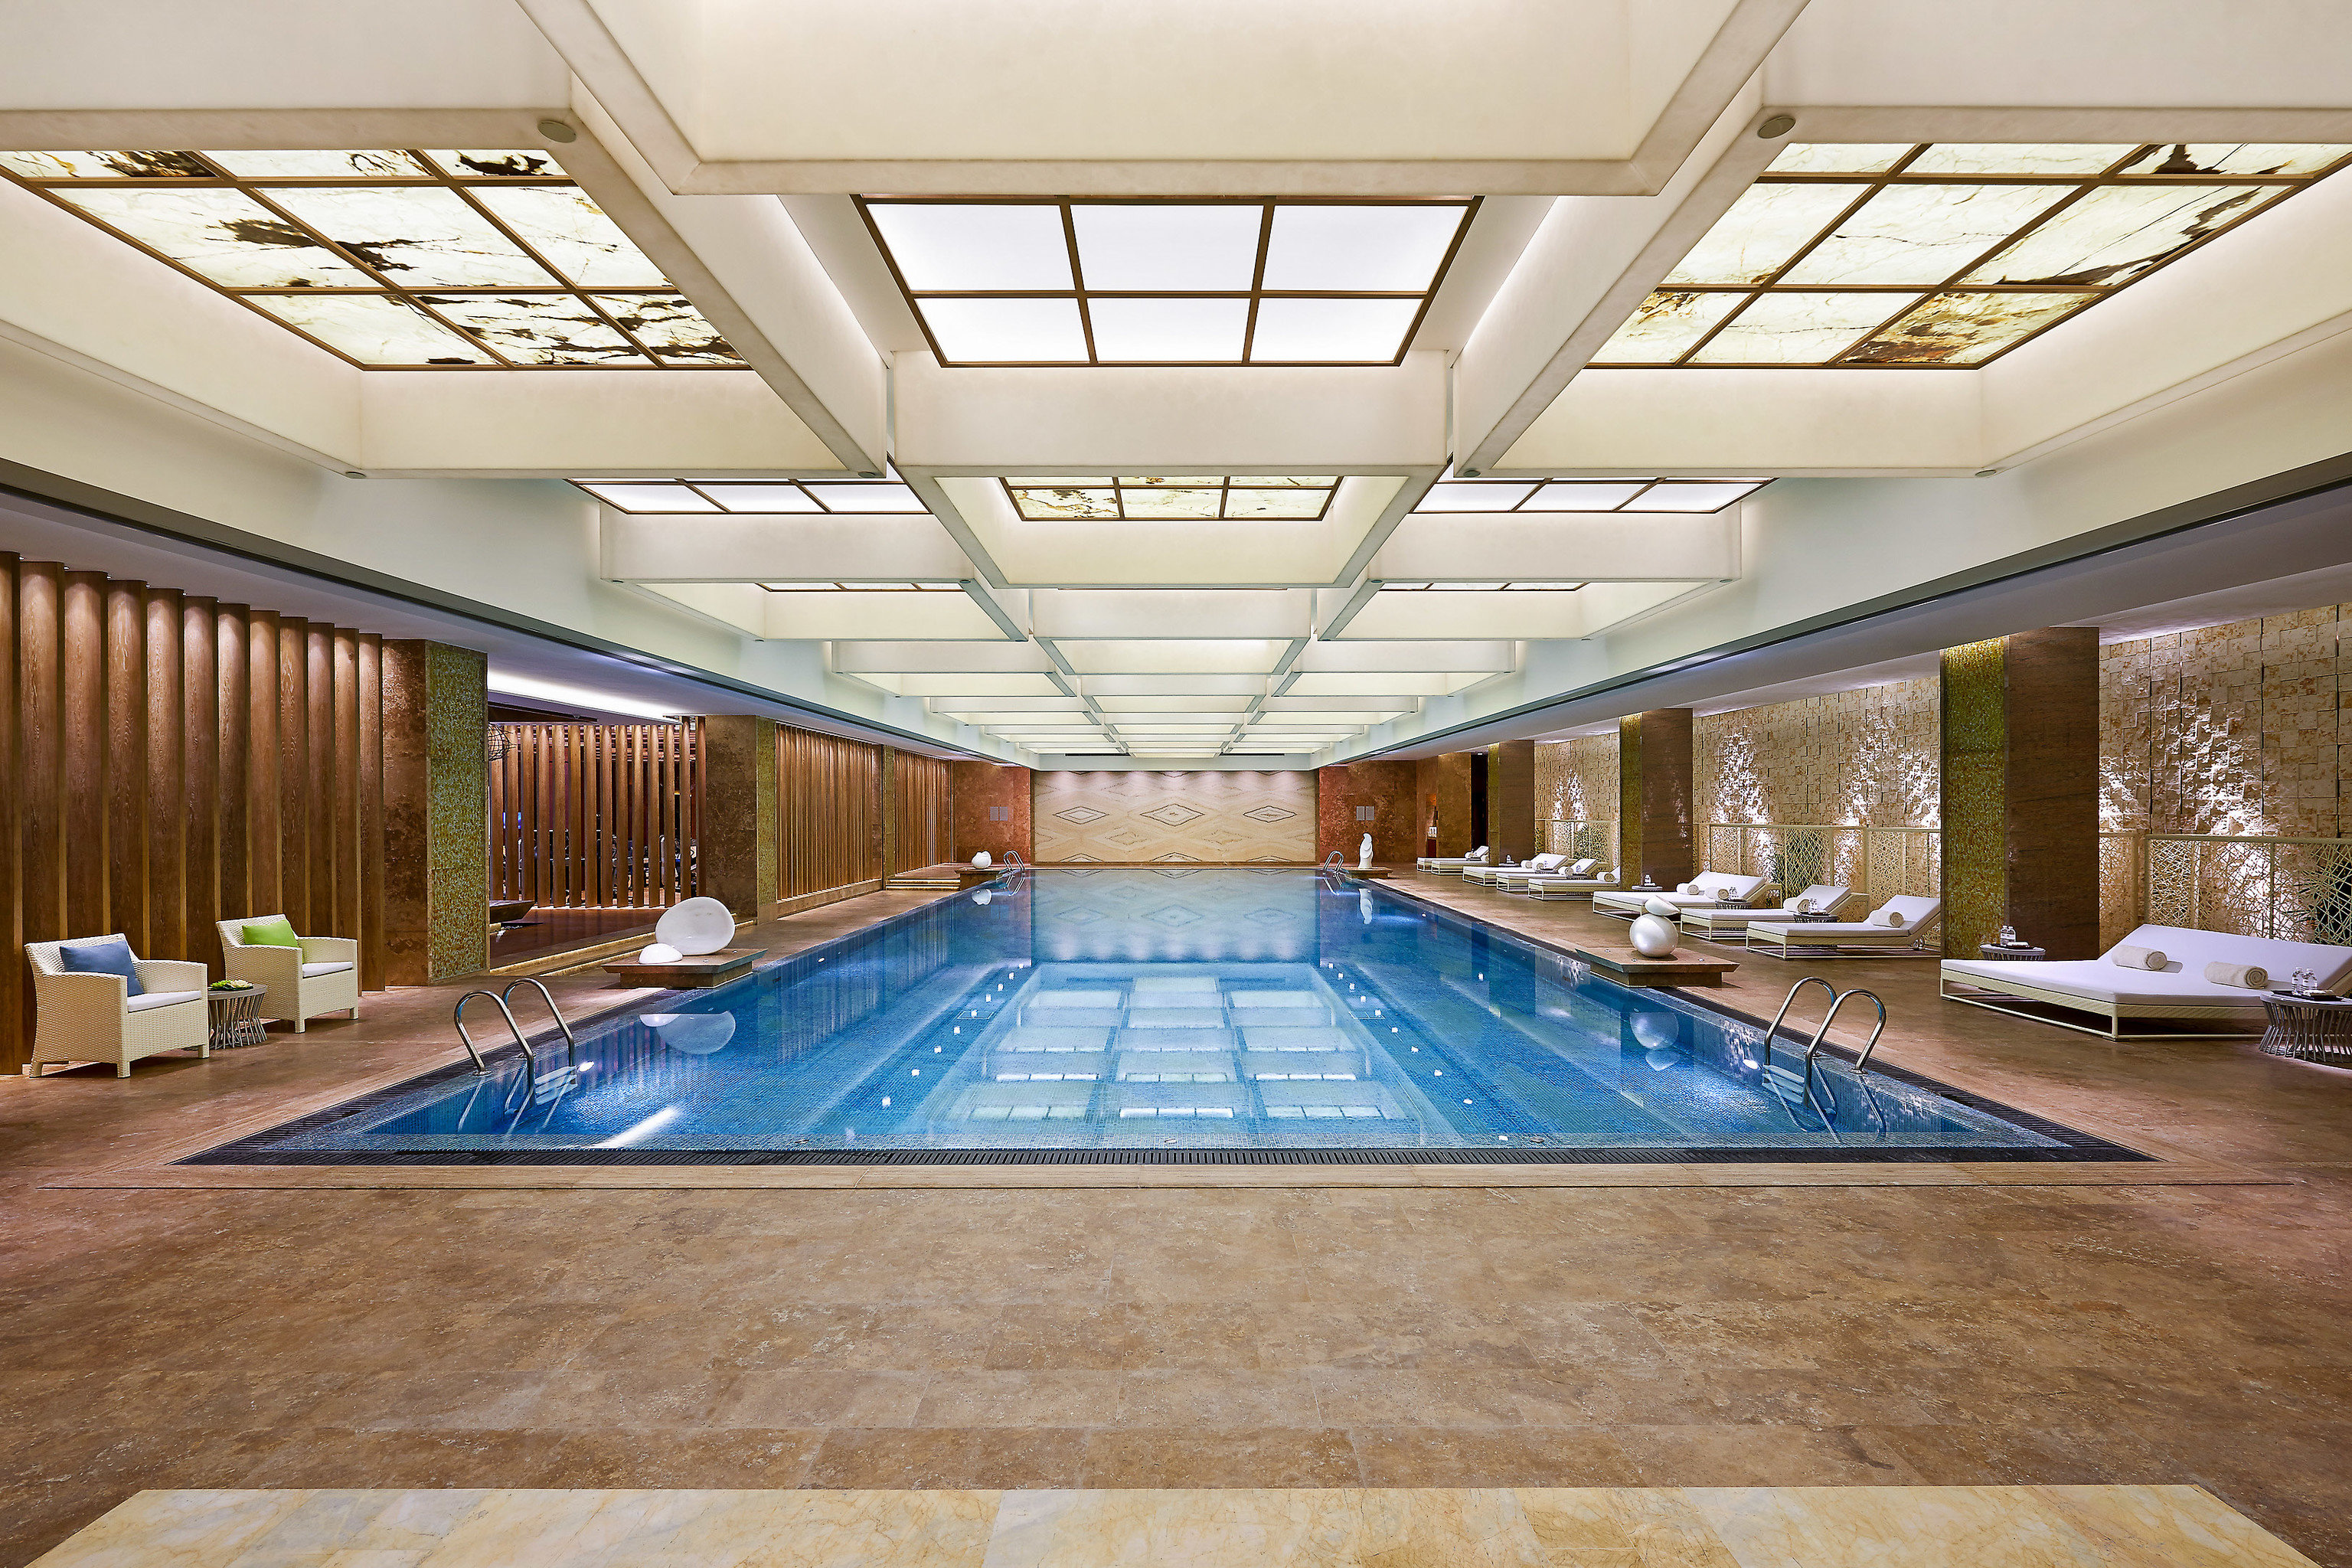 Boutique Hotels Luxury Travel indoor ceiling floor swimming pool leisure centre leisure daylighting Lobby real estate estate interior design apartment hotel amenity flooring condominium roof